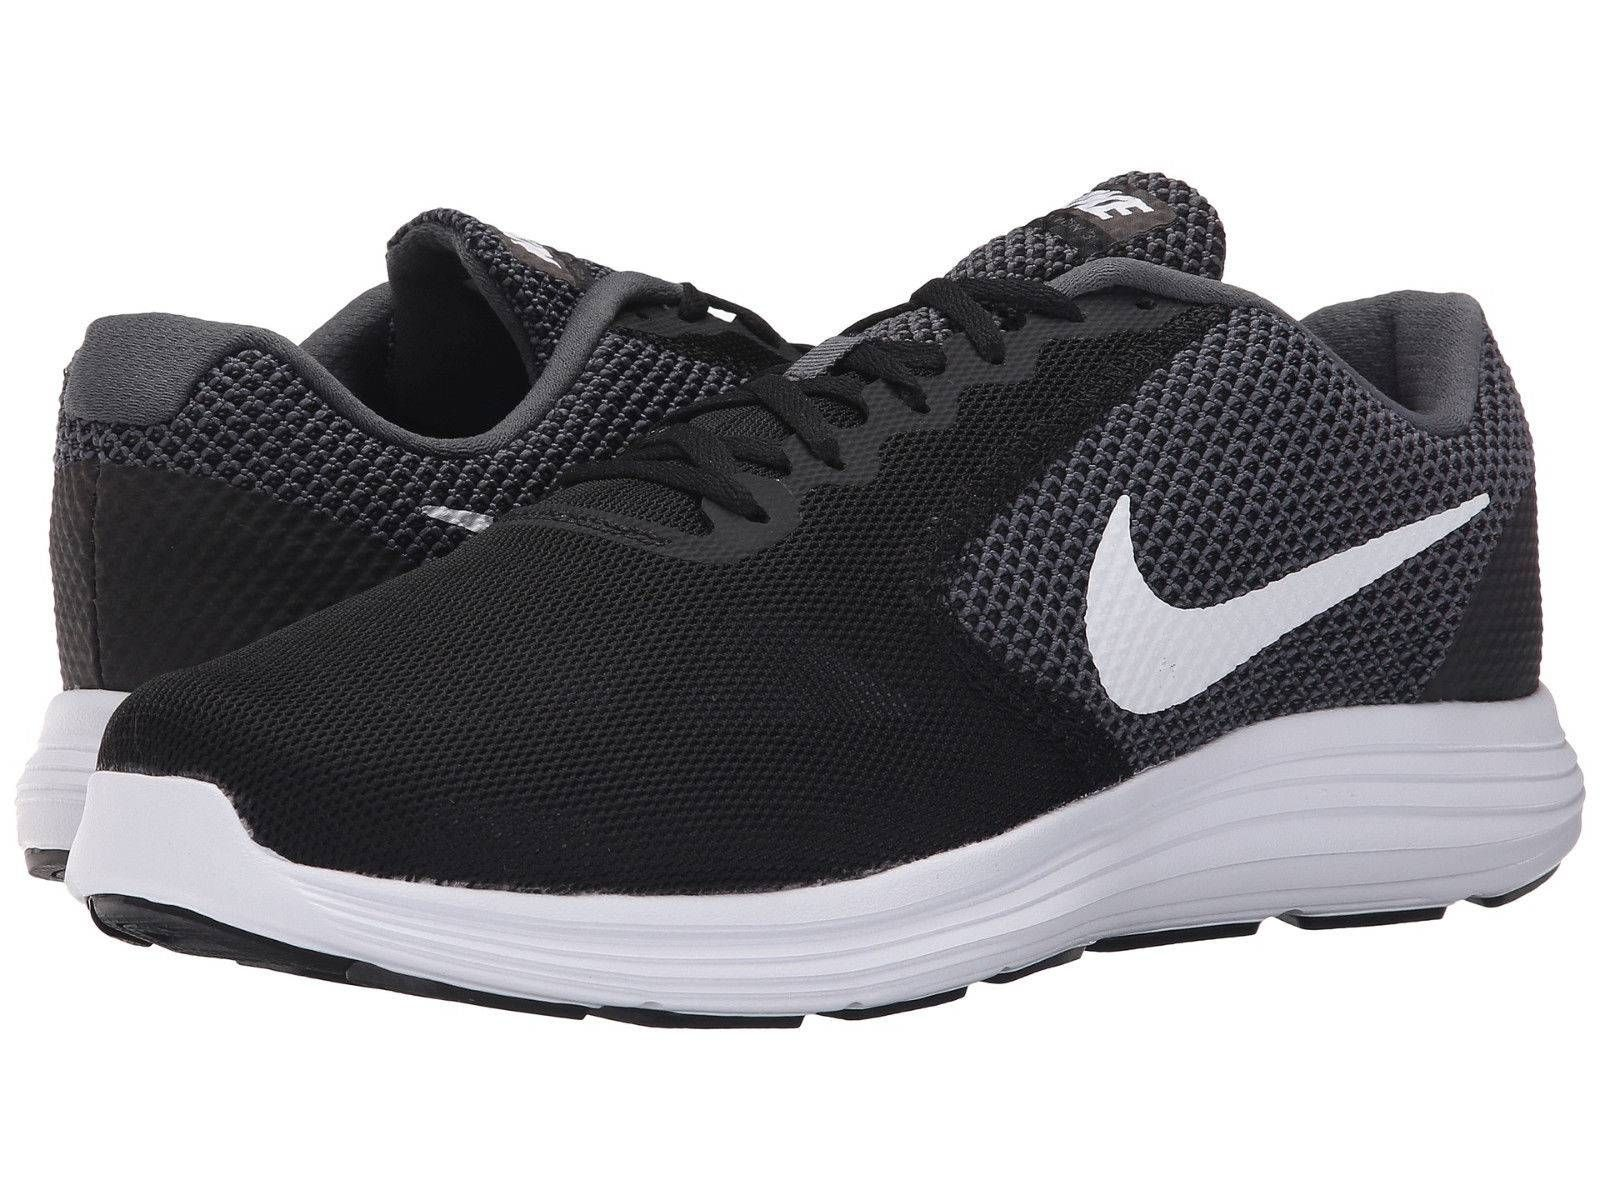 hot sale online b07f8 8cbf1 awesome Nike REVOLUTION three Mens Black White 001 Athletic ...